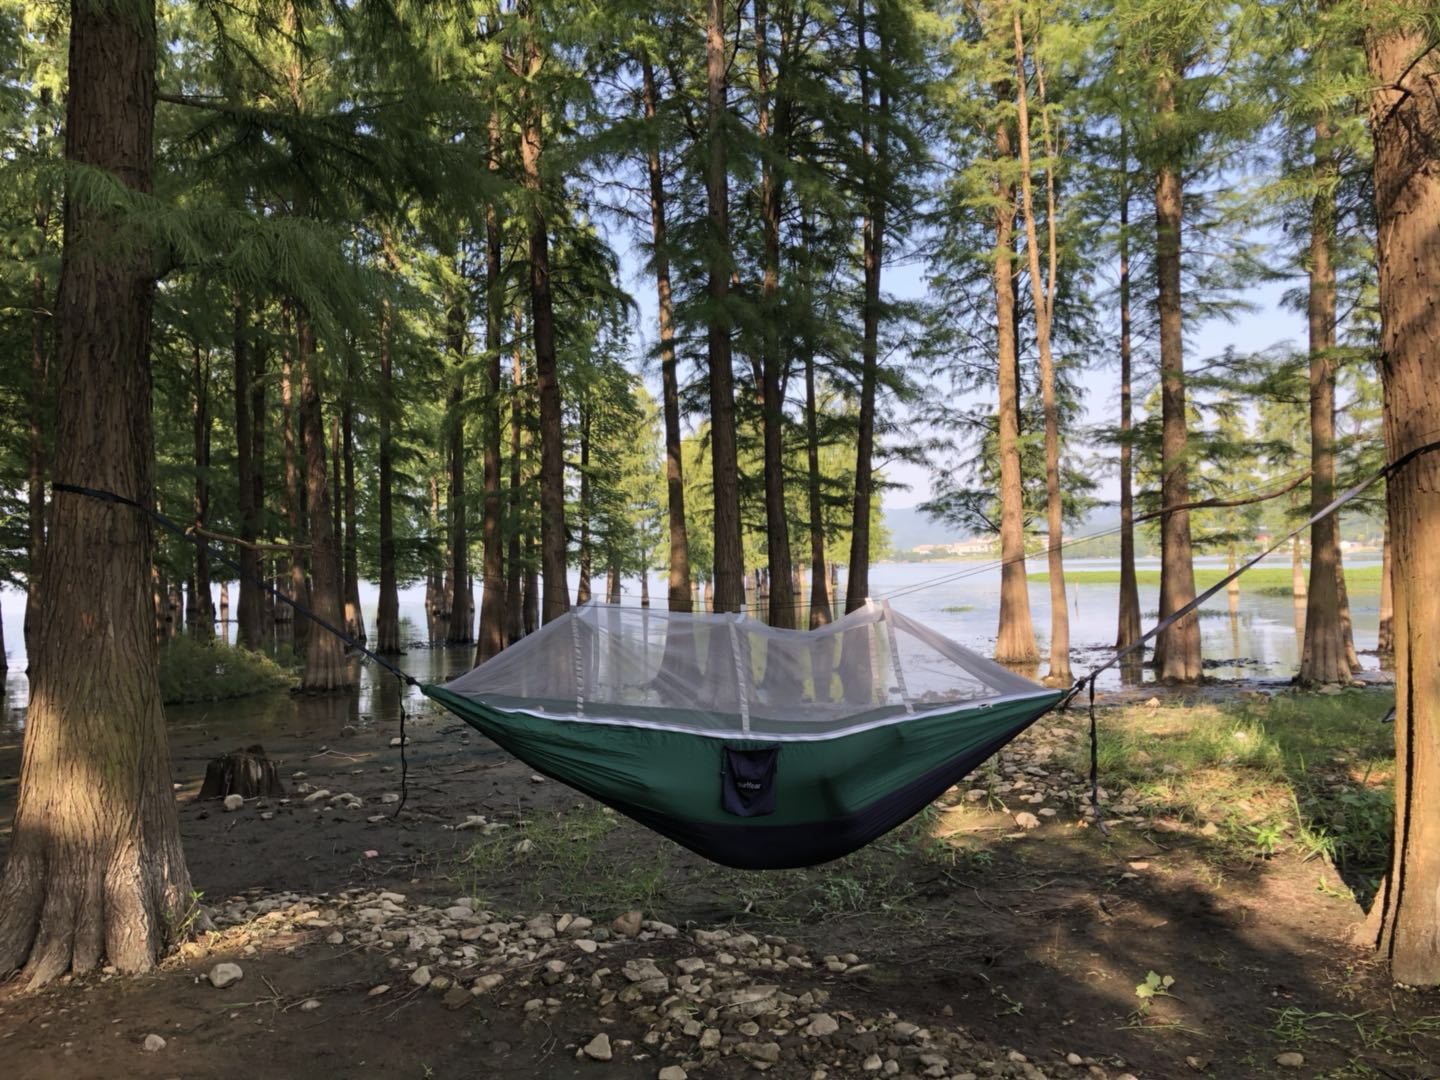 Anti mosquito Camping Parachute Can Customized Hanging Bed Outdoor Hammock Chair Stand Big Mosquito Net Net